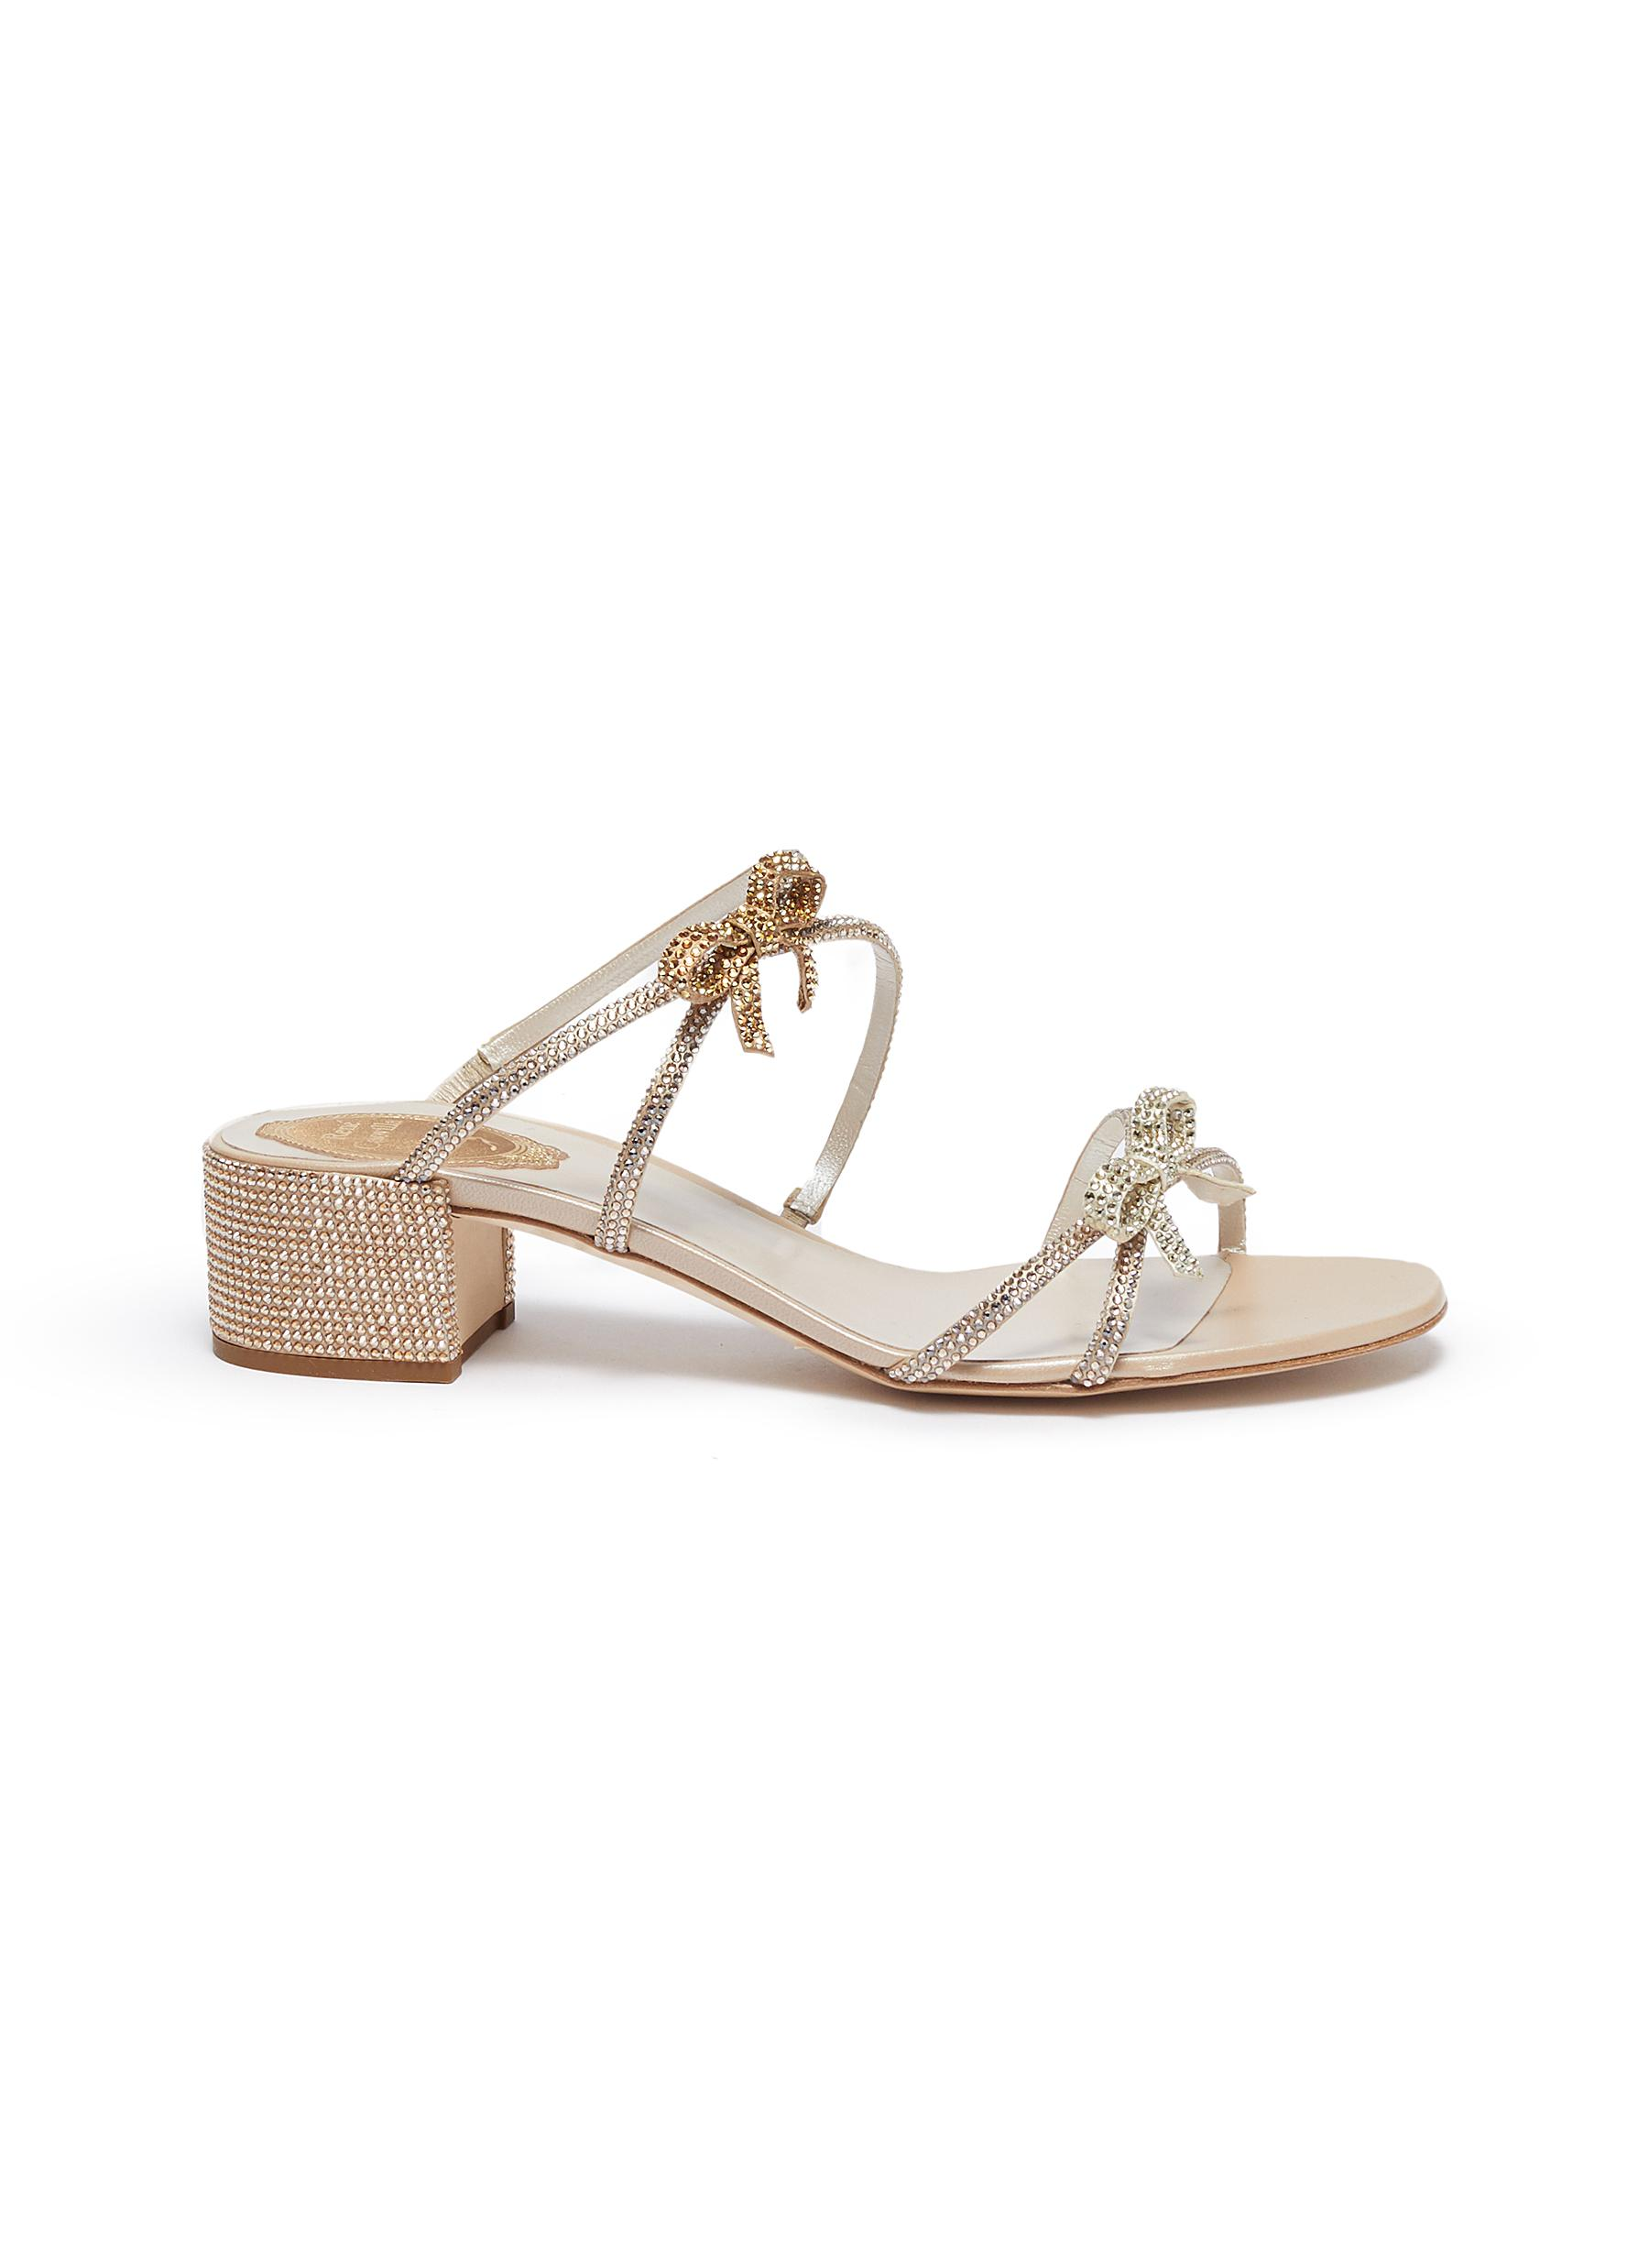 René Caovilla Low Heels Bow cross strap strass embellished sandals